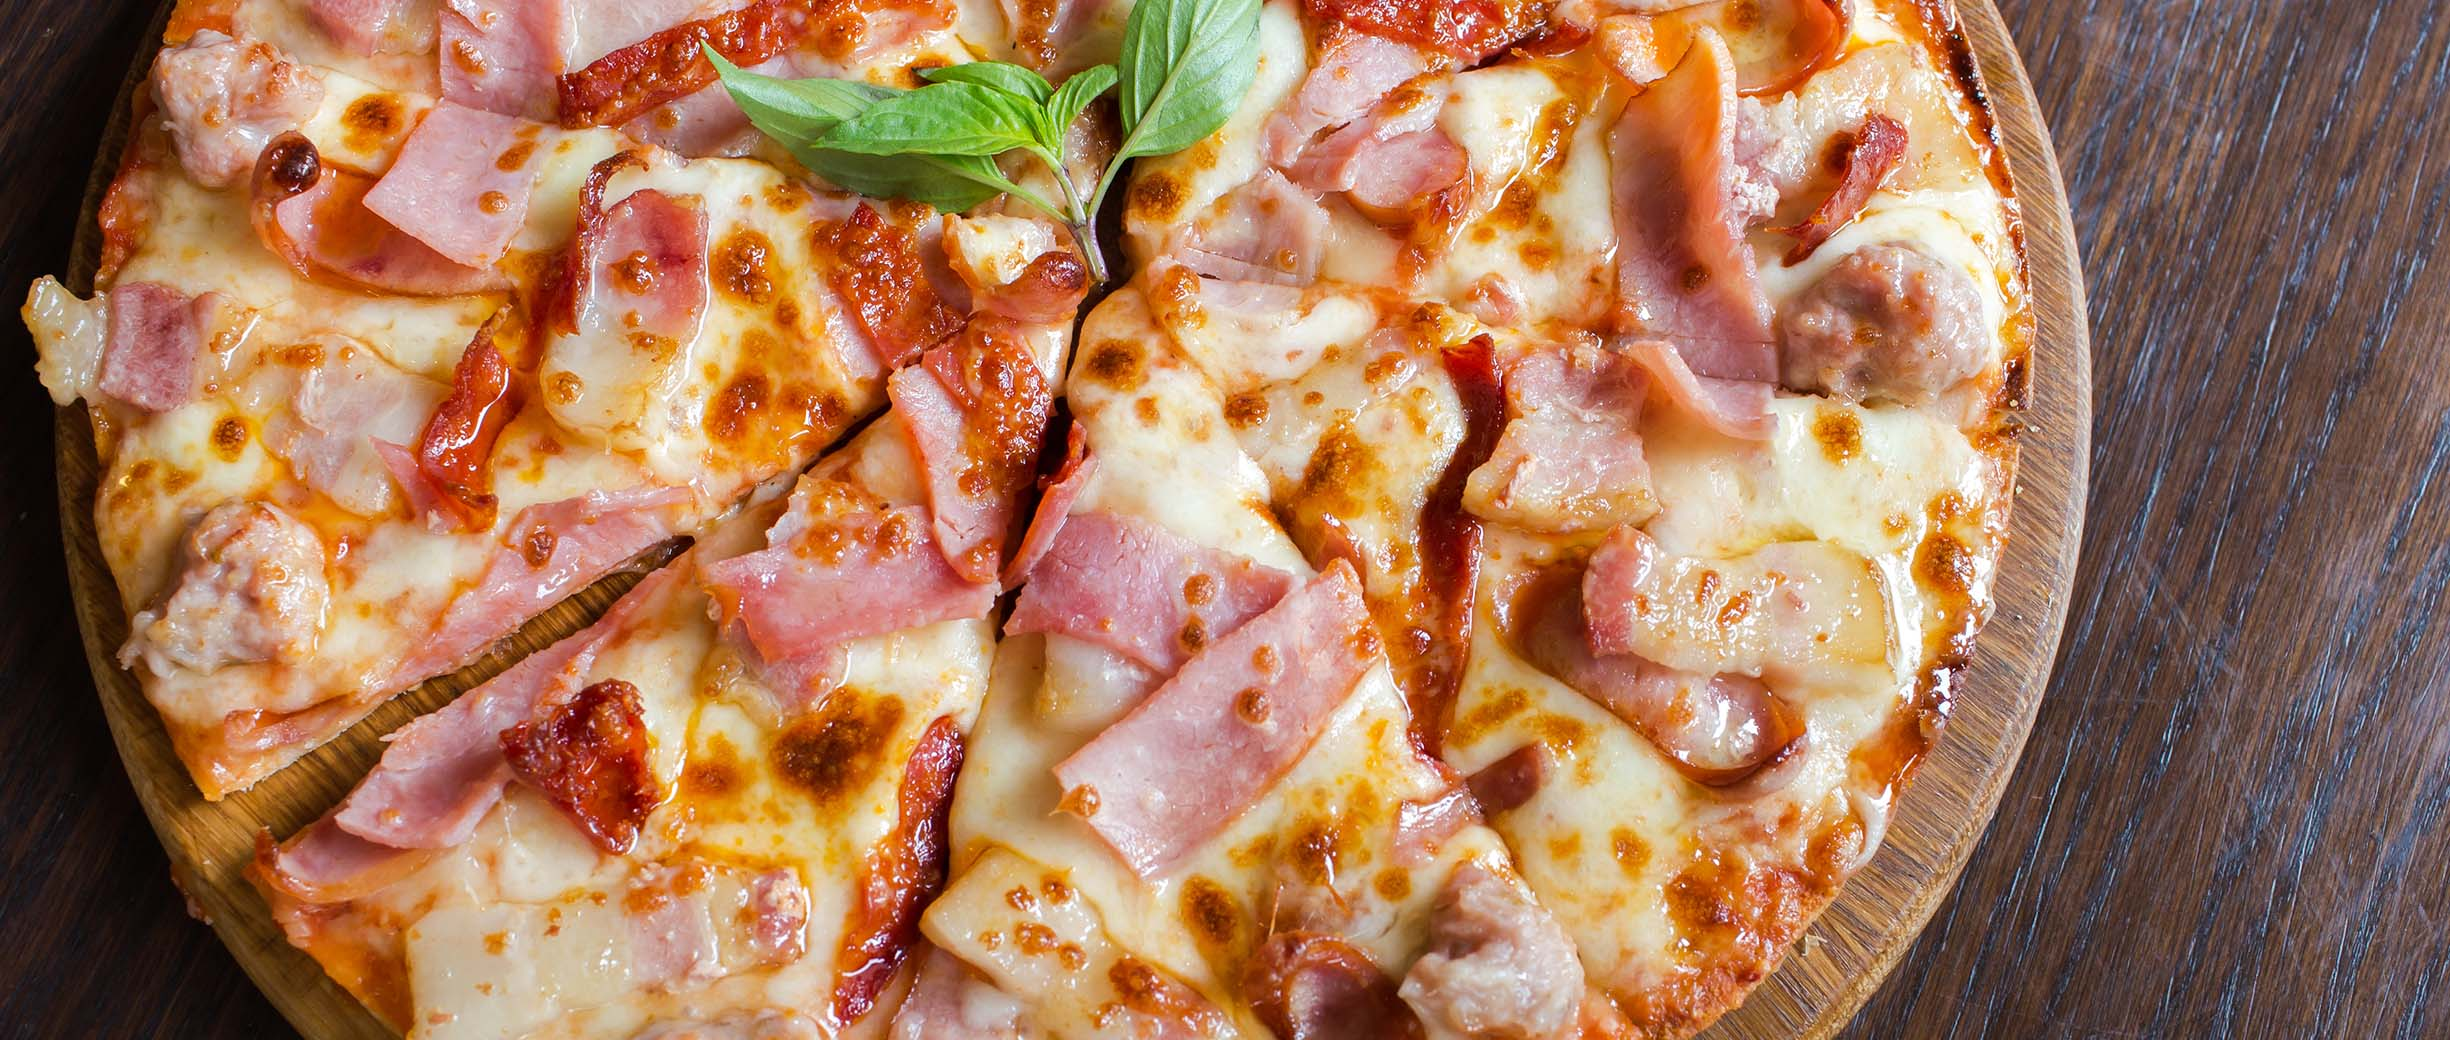 15 Recipes You Never Thought of Making with Lunch Meat (That